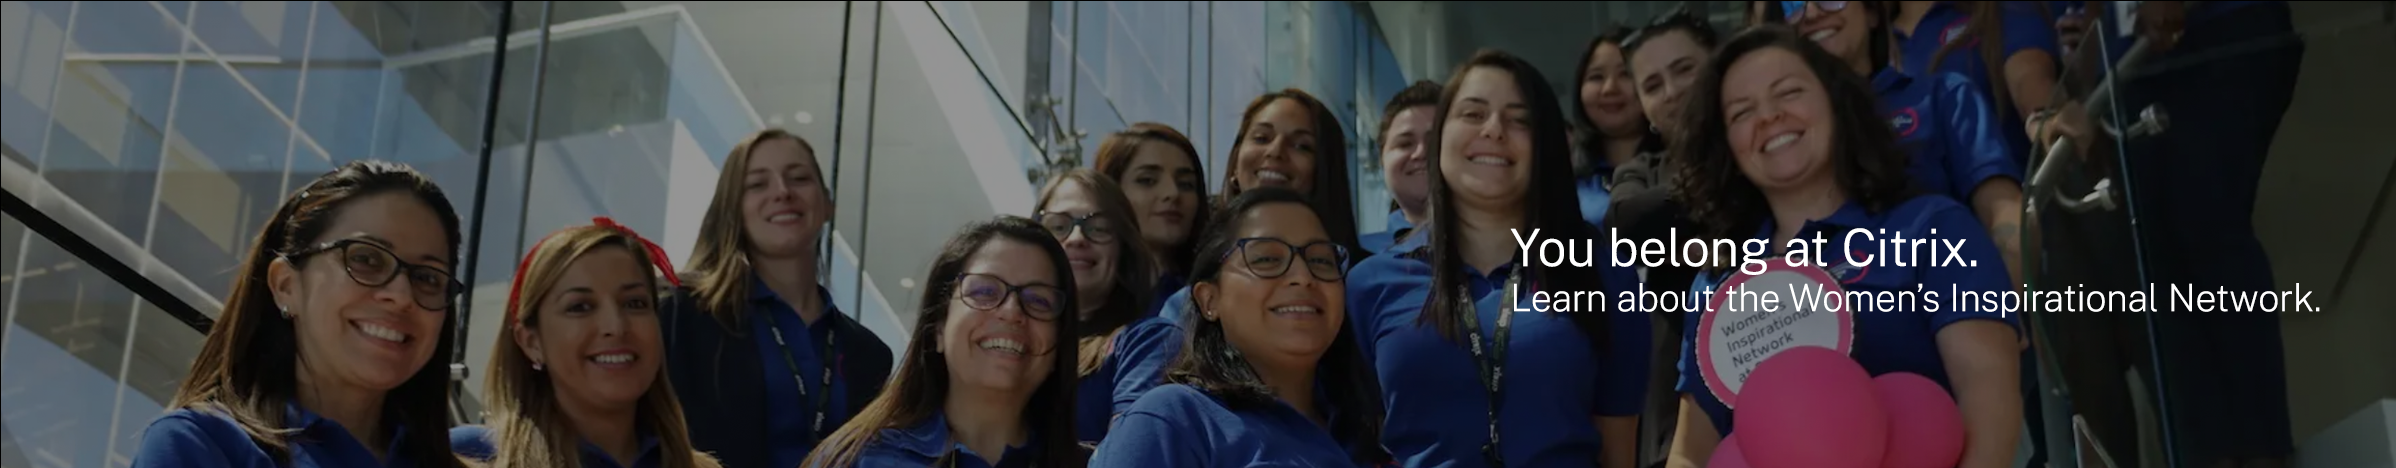 You belong at Citrix. Learn about the Women's Inspirational Network